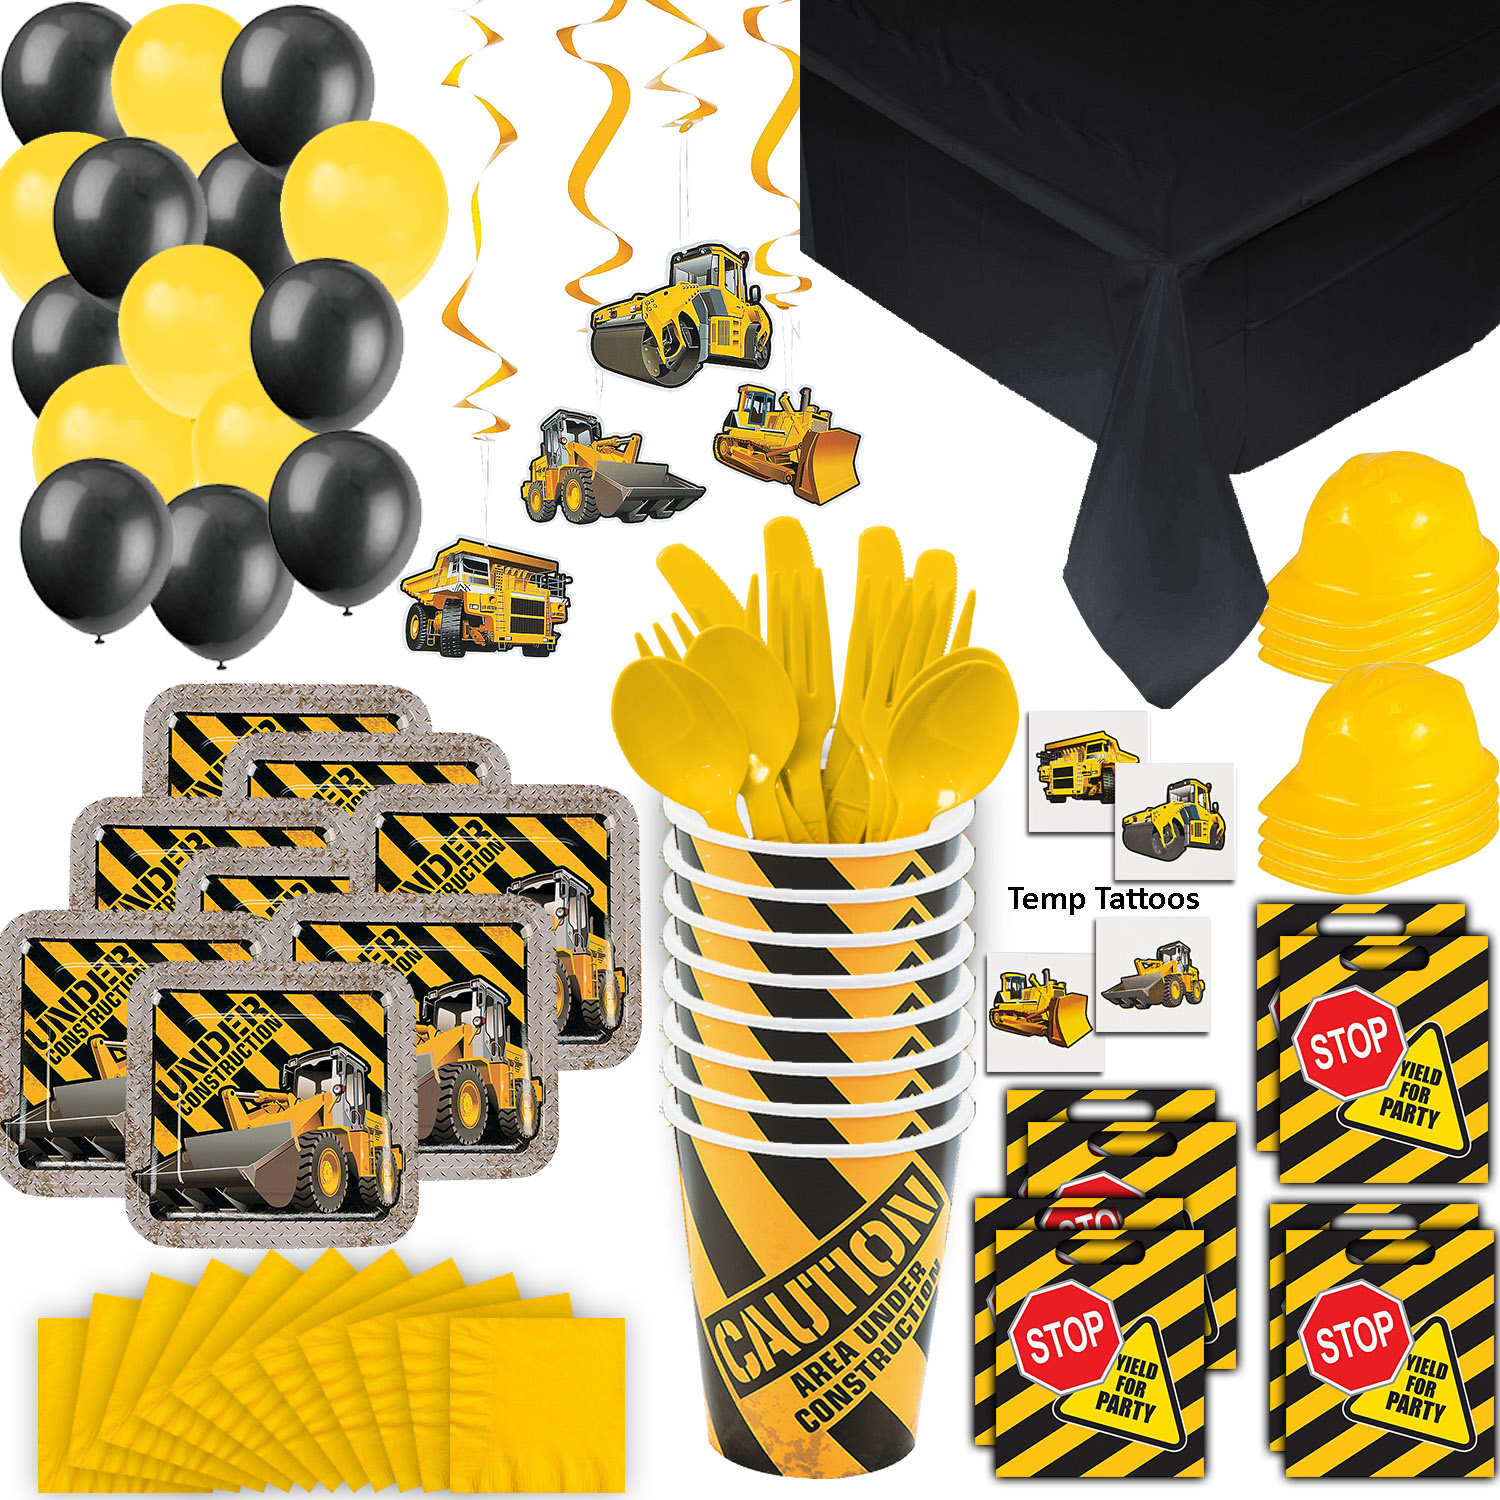 Construction Party Supplies - 8 Guest - Plates, Cups, Napkins, Tablecloth, Cutlery, Loot Bags, Balloons, Hanging Decorations, Hard Hats, Tattoos - Black and Yellow Builder Zone Theme Birthday